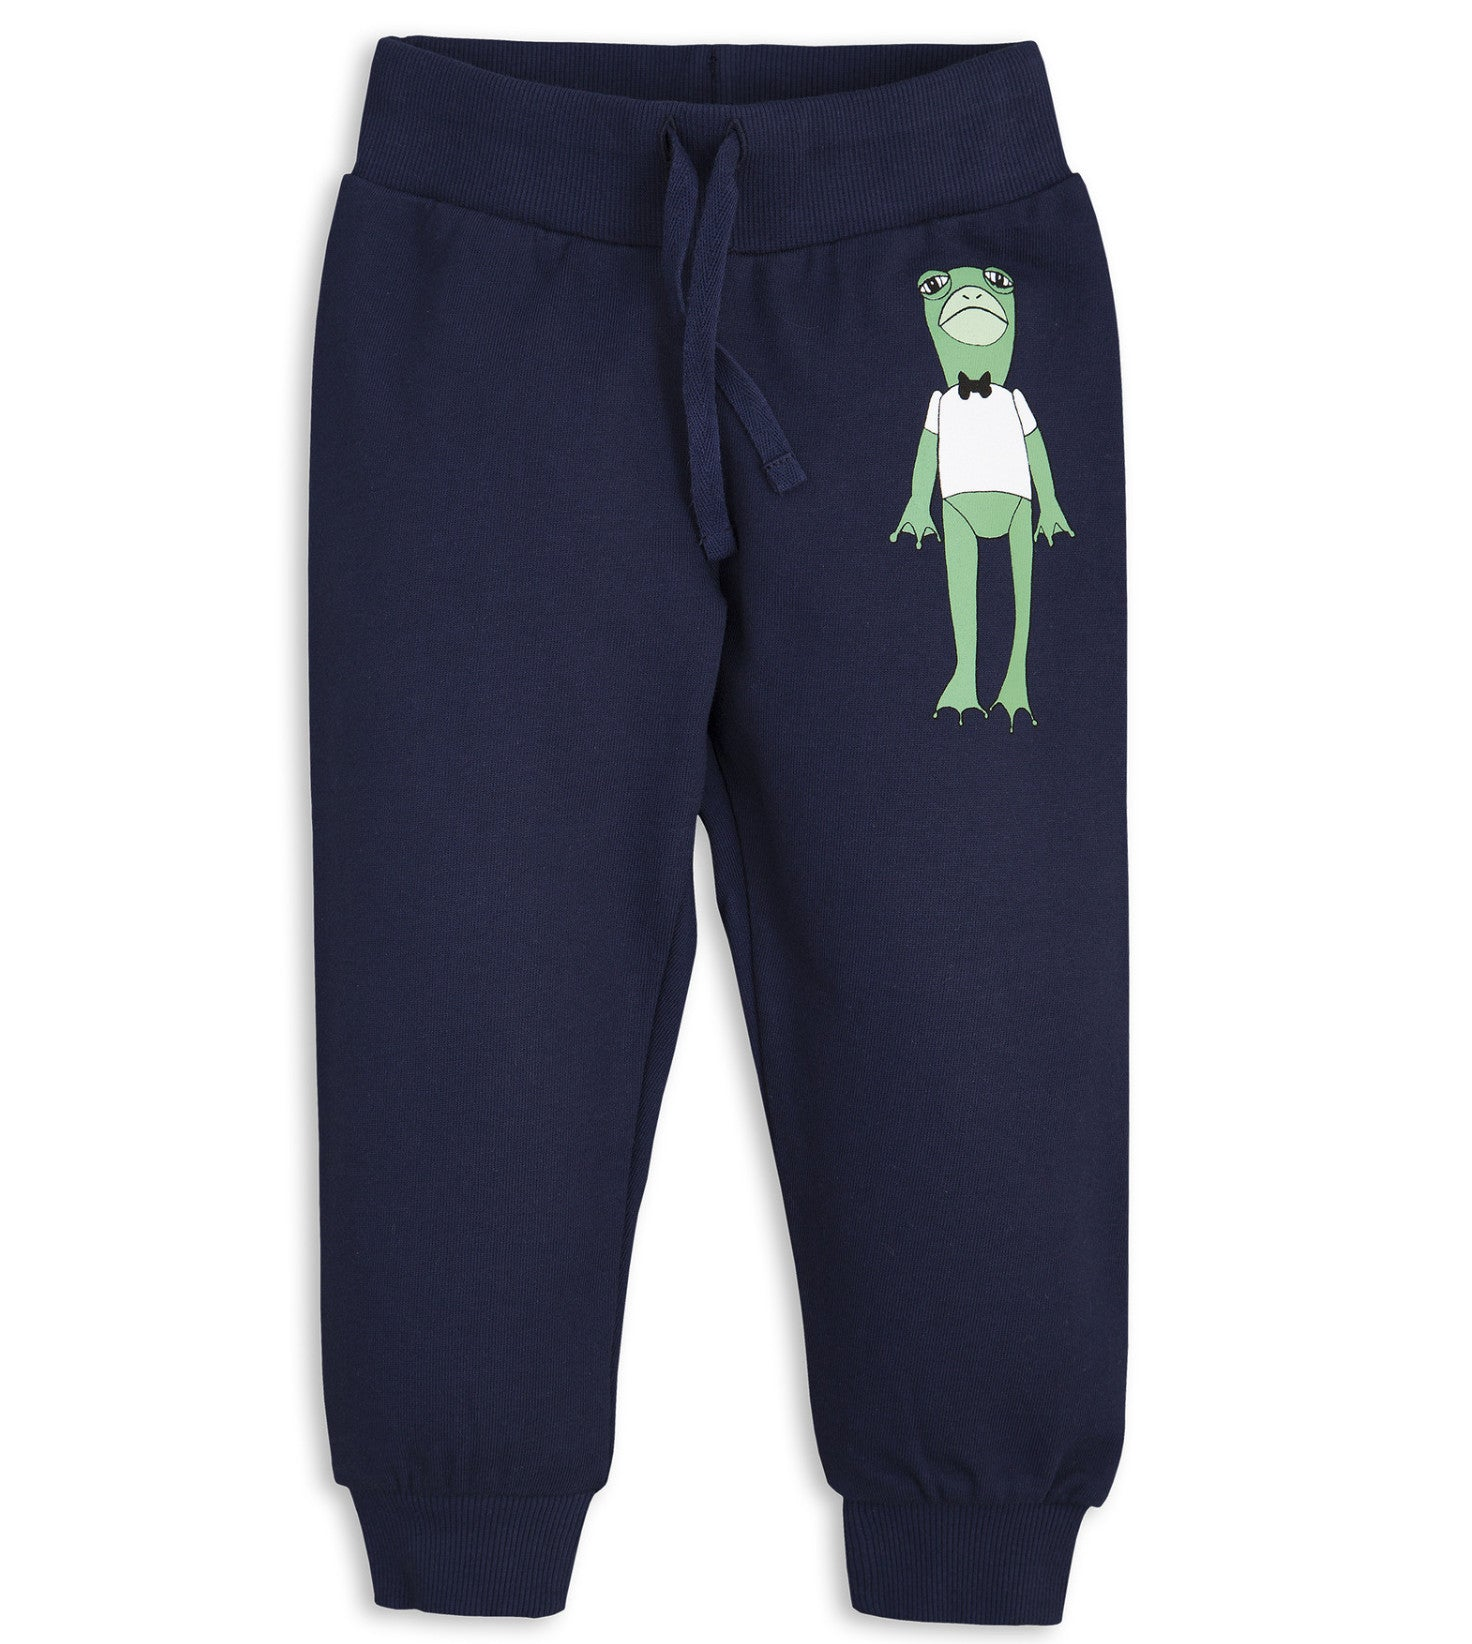 Mini Rodini | Frog Sweatpants - Navy | The Mini Life